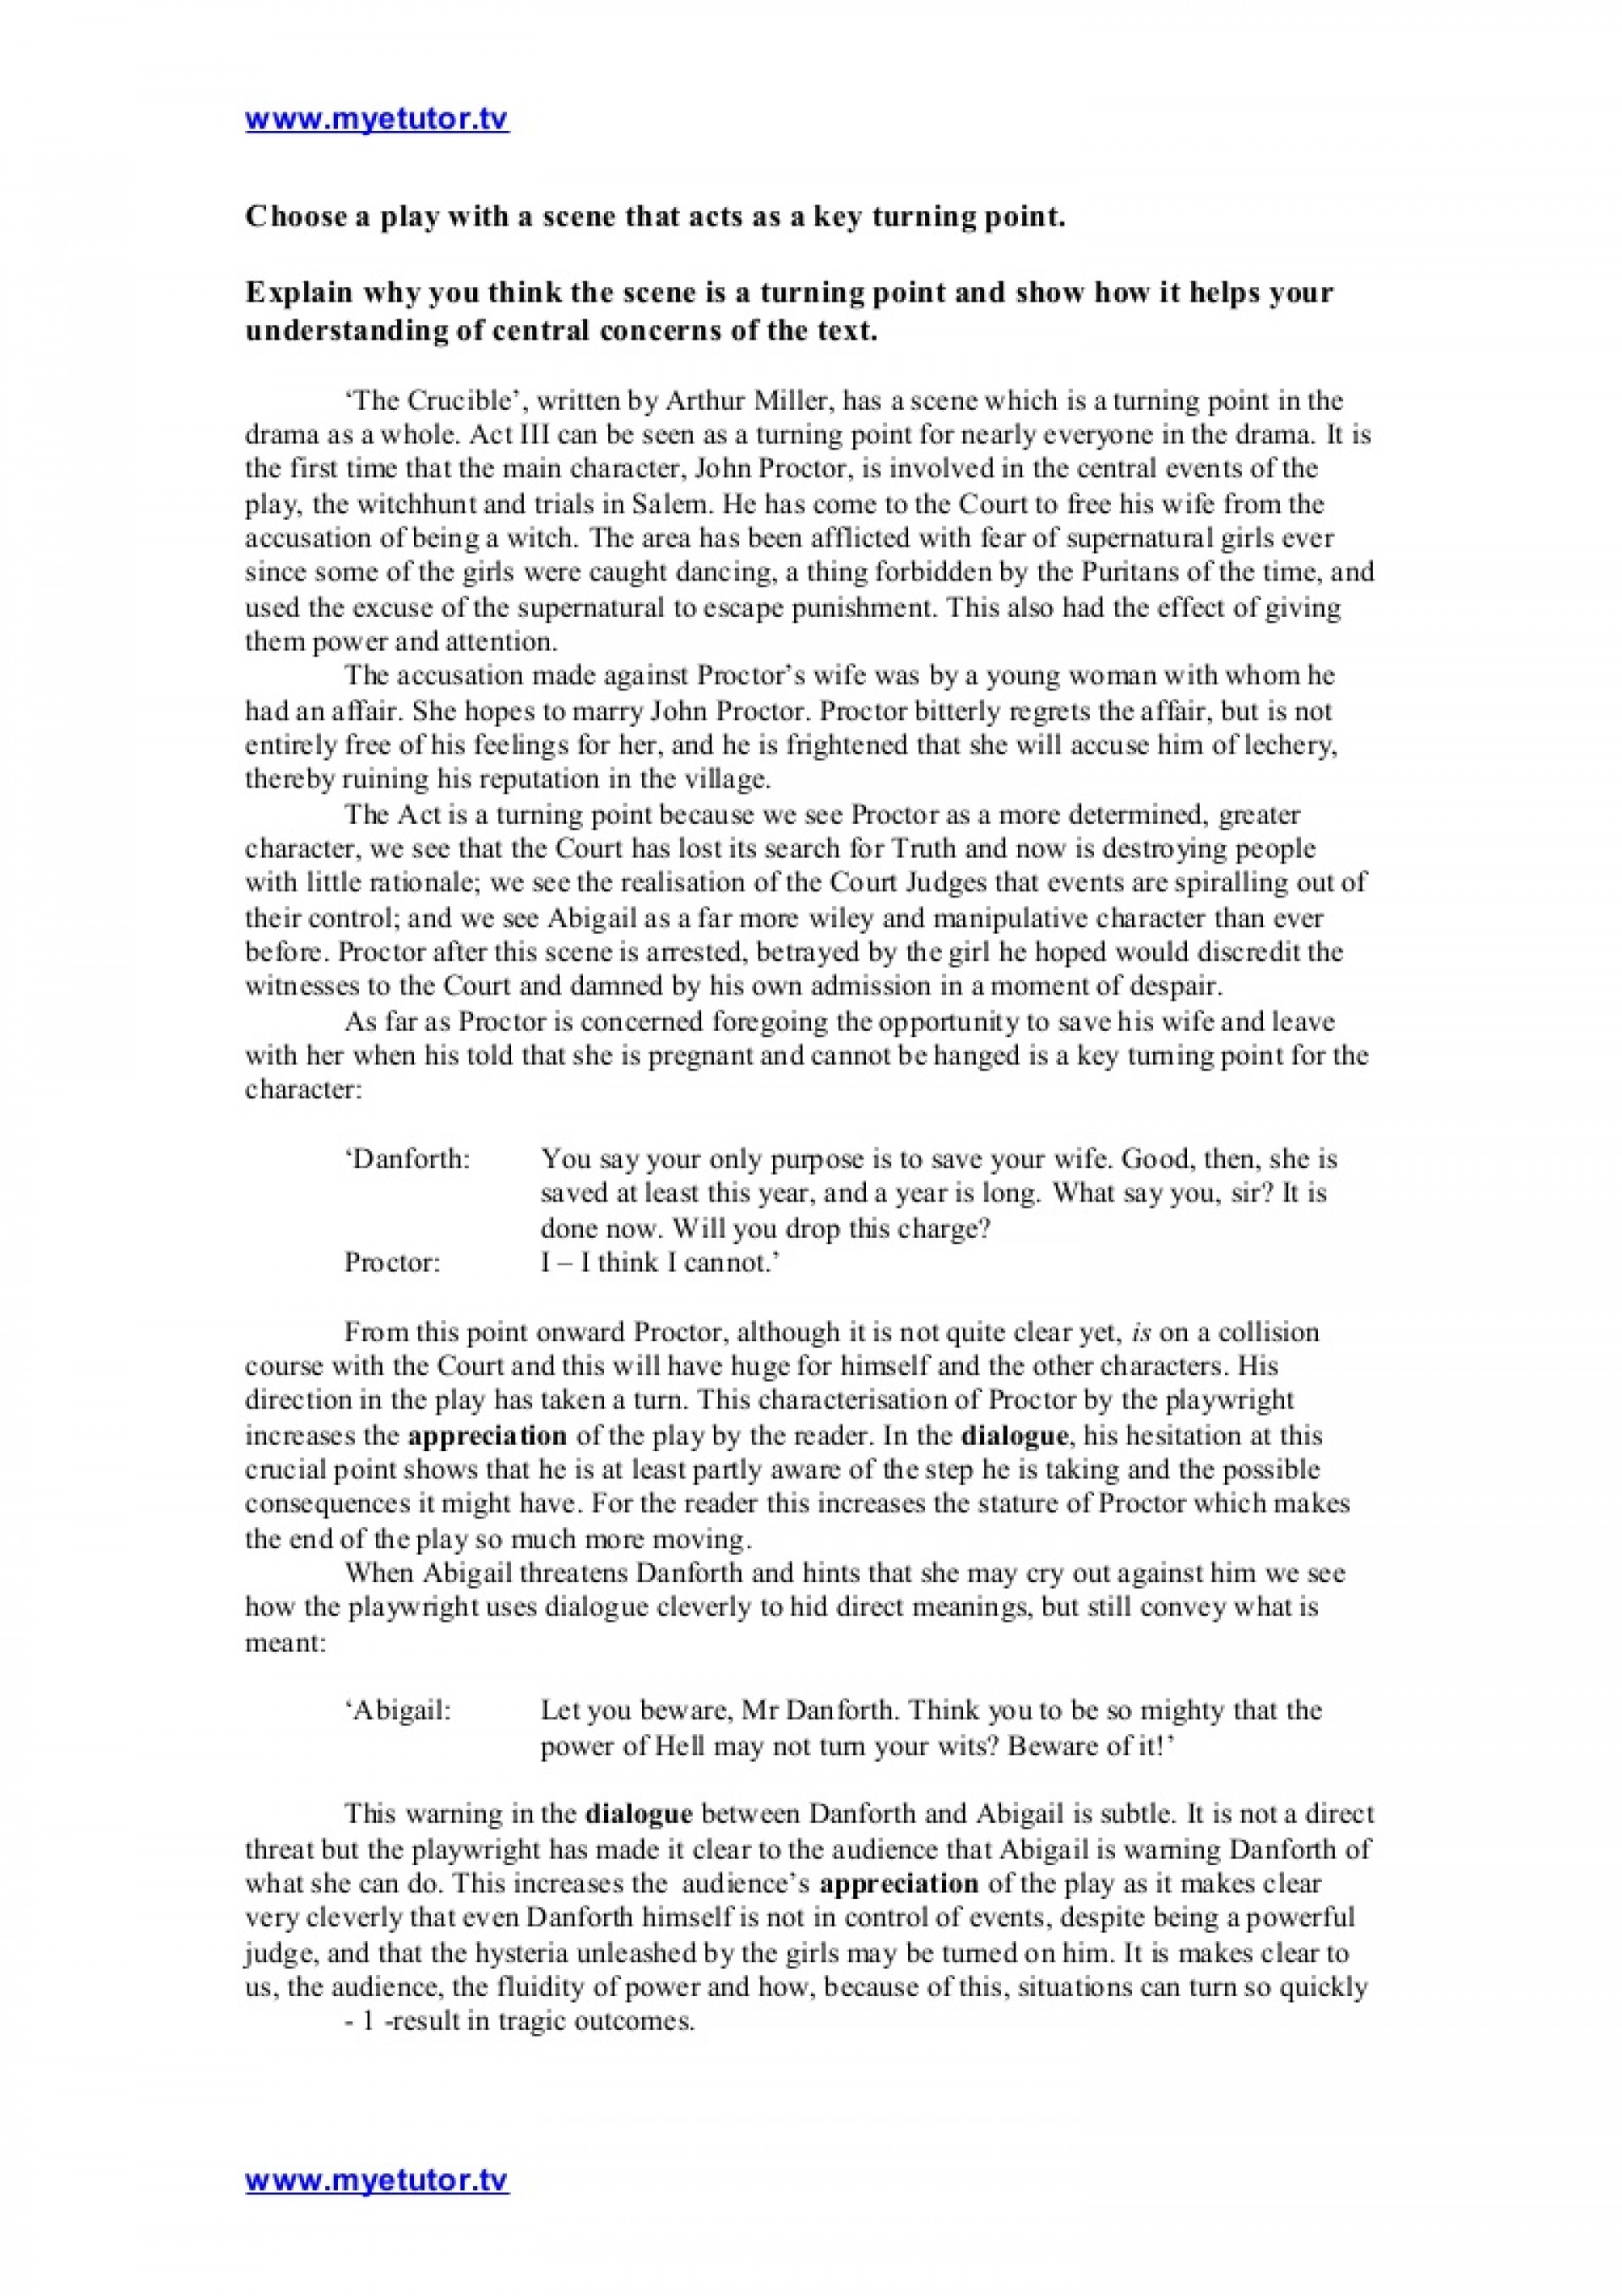 011 Thecrucible Keysceneexemplaressay Phpapp01 Thumbnail Essay Example The Crucible Shocking Topics Topic Sentences Analytical Writing Prompts 1920